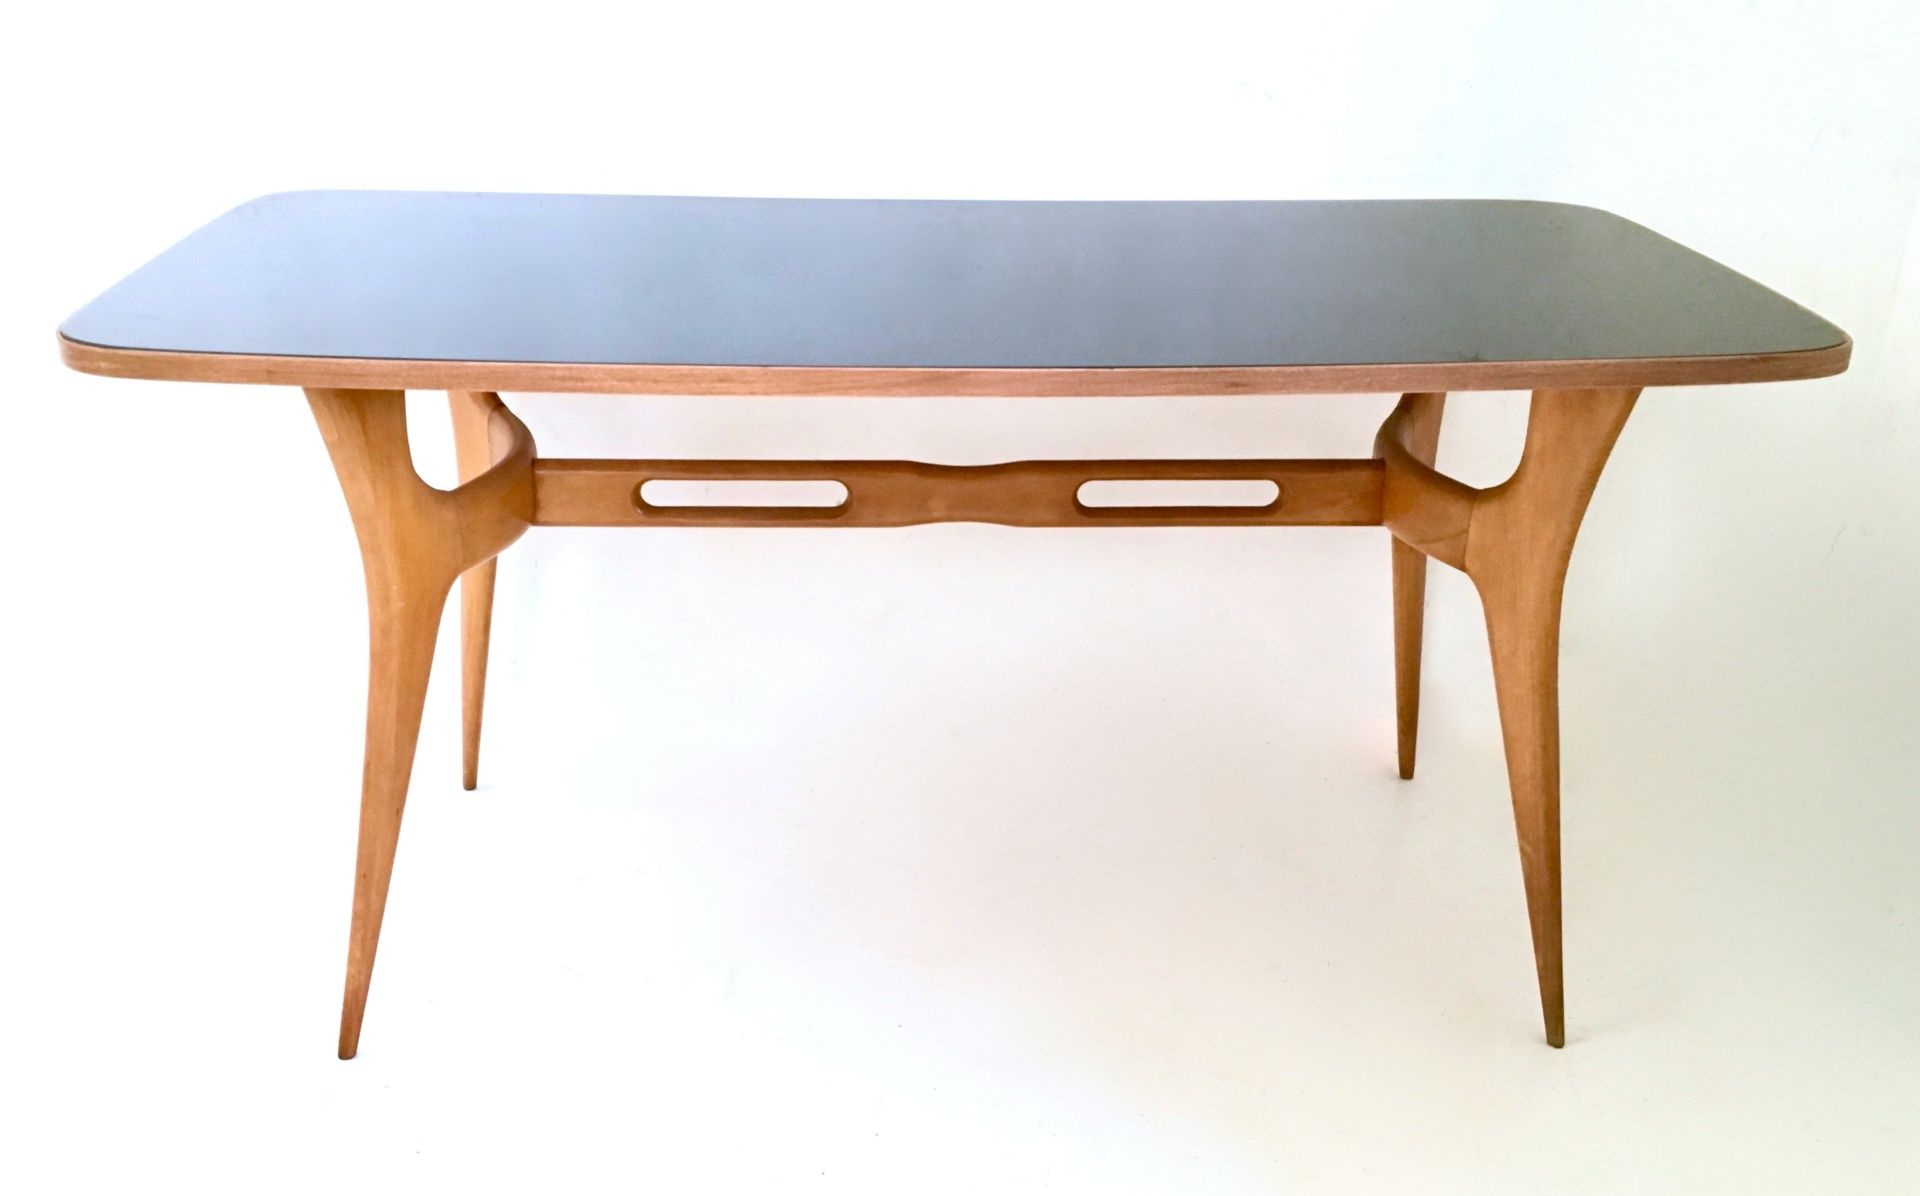 Italian Maple Dining Table with Glass Top 1950s for sale at Pamono